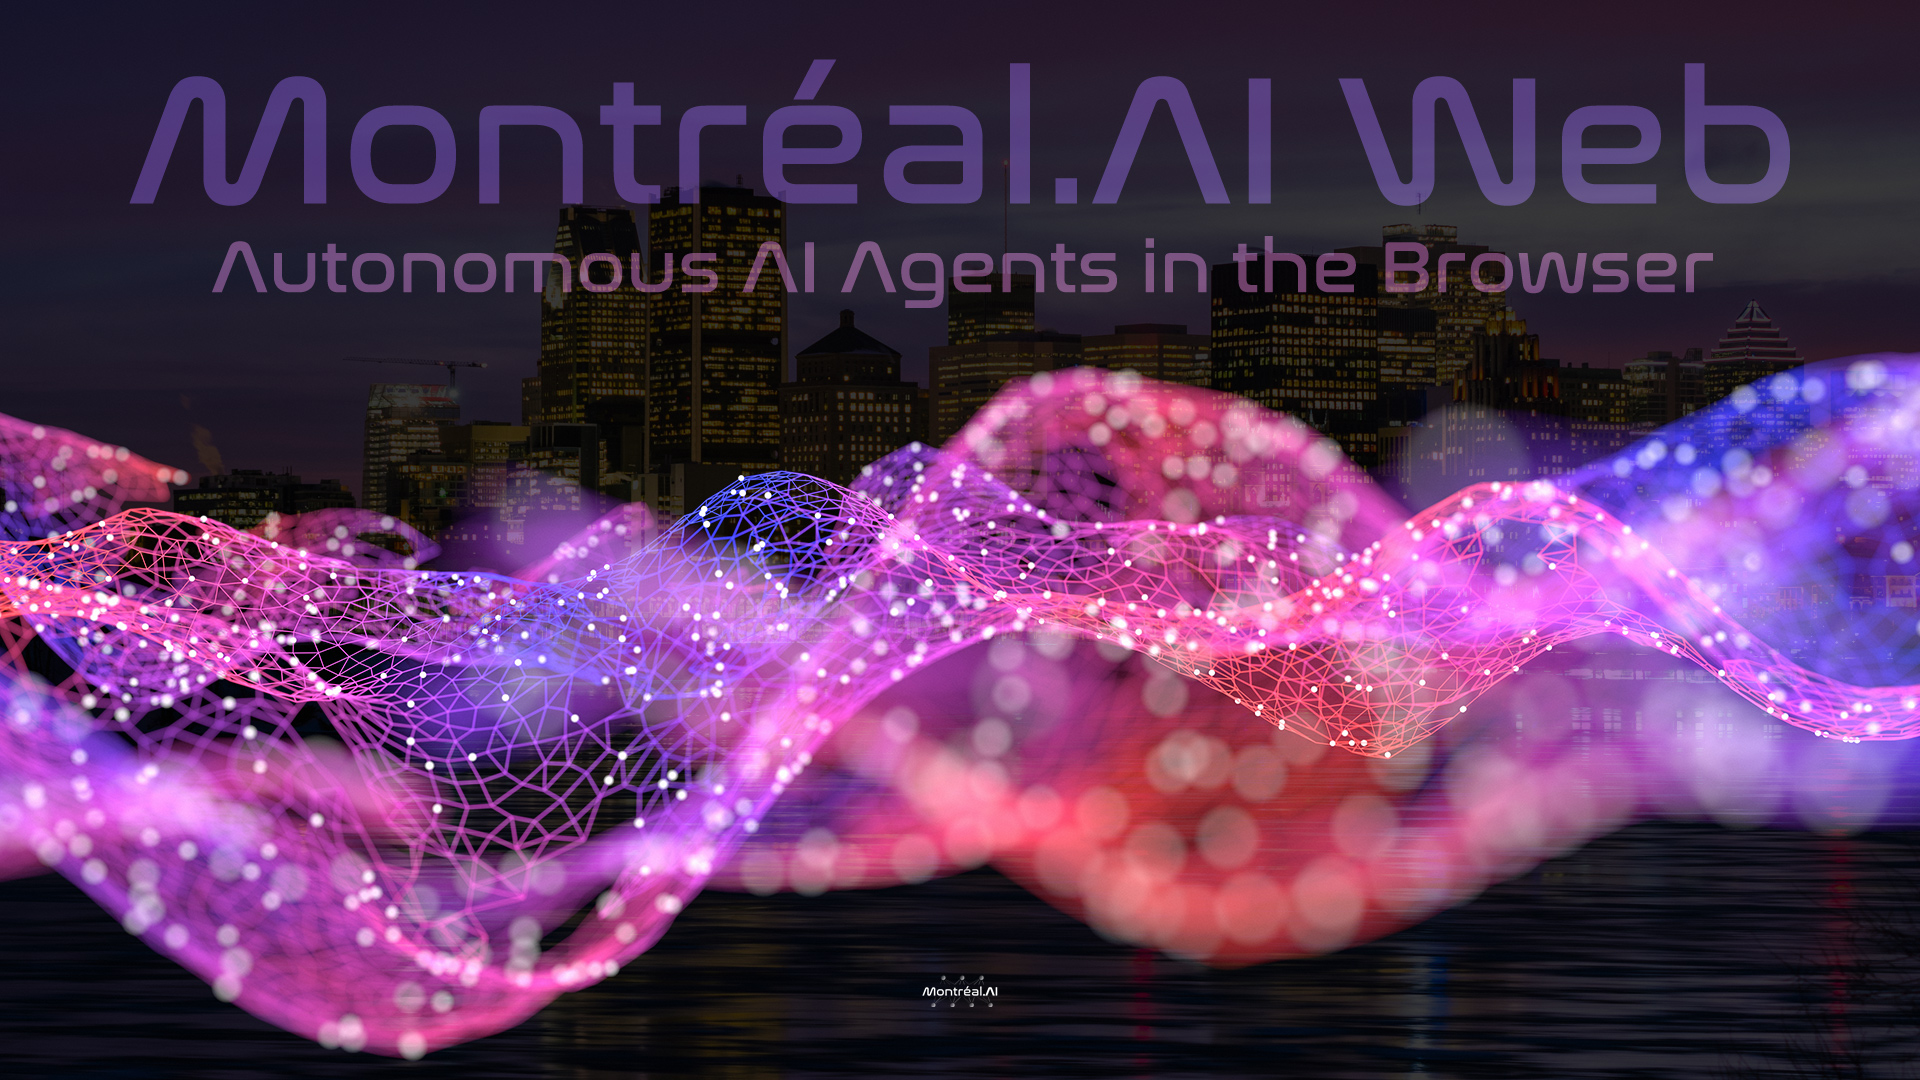 Montréal.AI Web — Artificial Intelligence for the Web